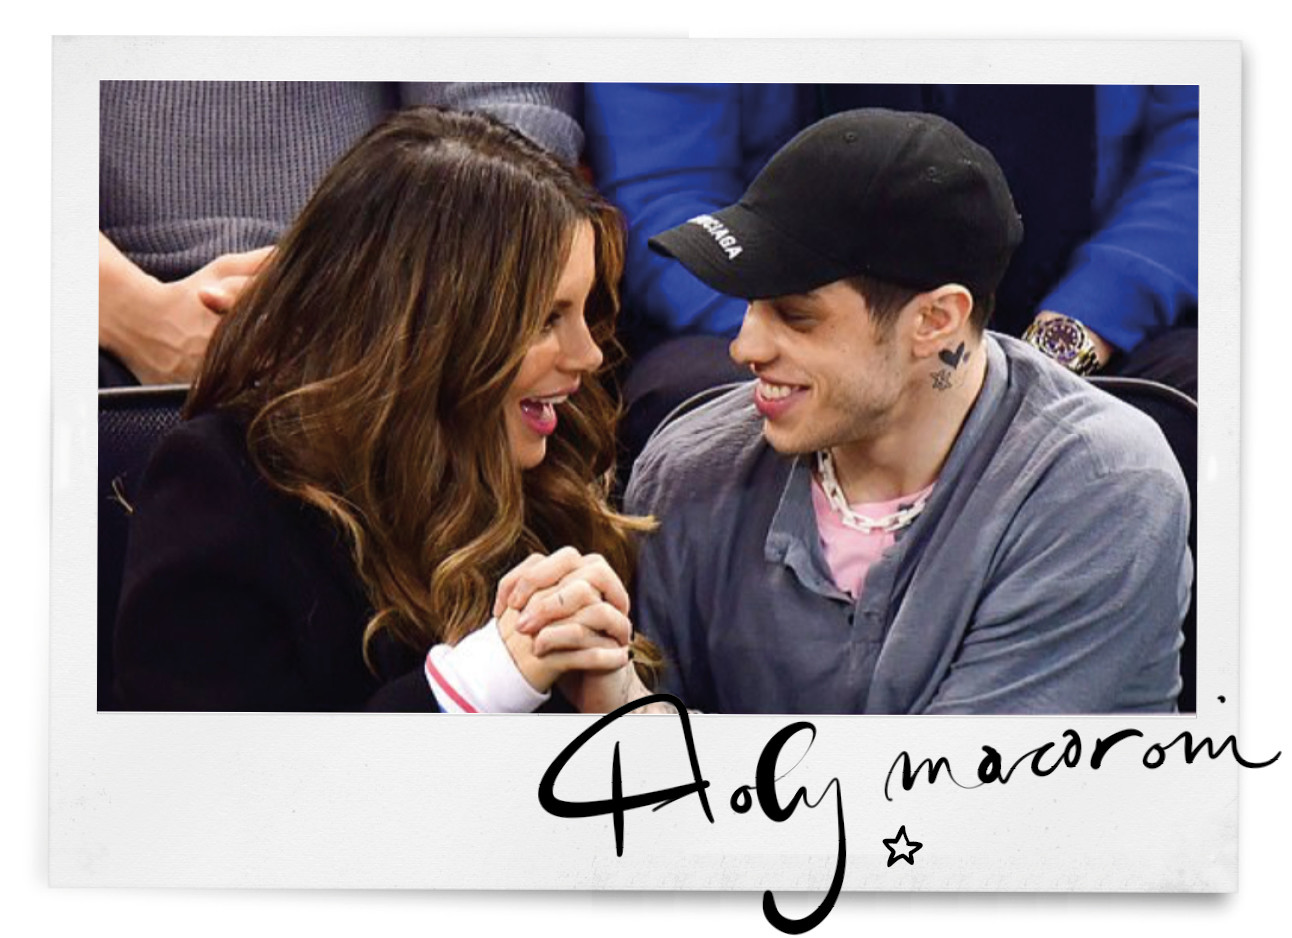 pete davidson and kate beckinsale holding hands